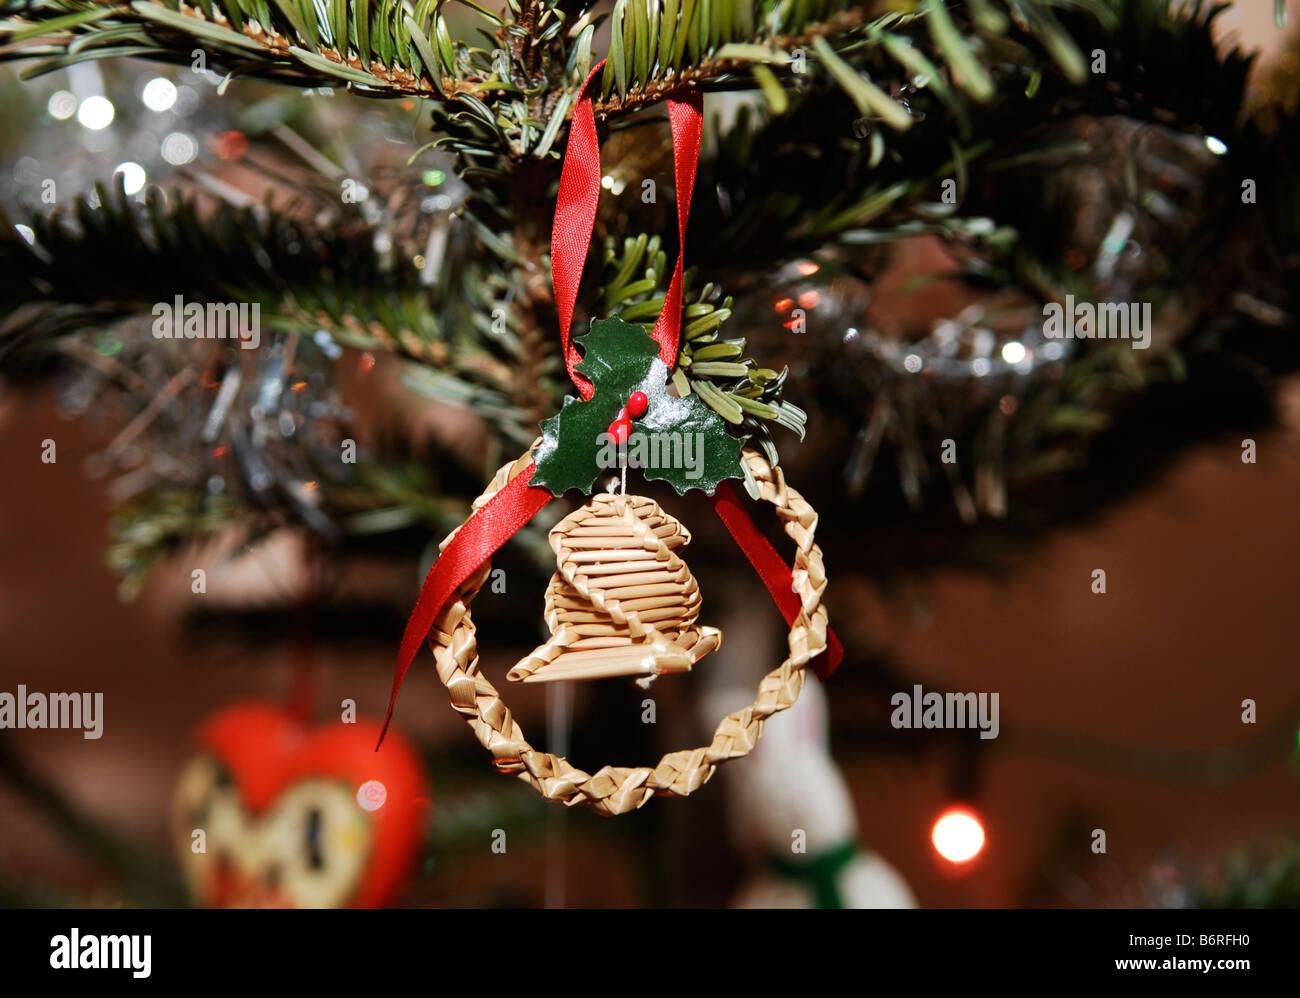 Corn Dolly Old Fashioned Christmas Tree Decoration Stock Photo